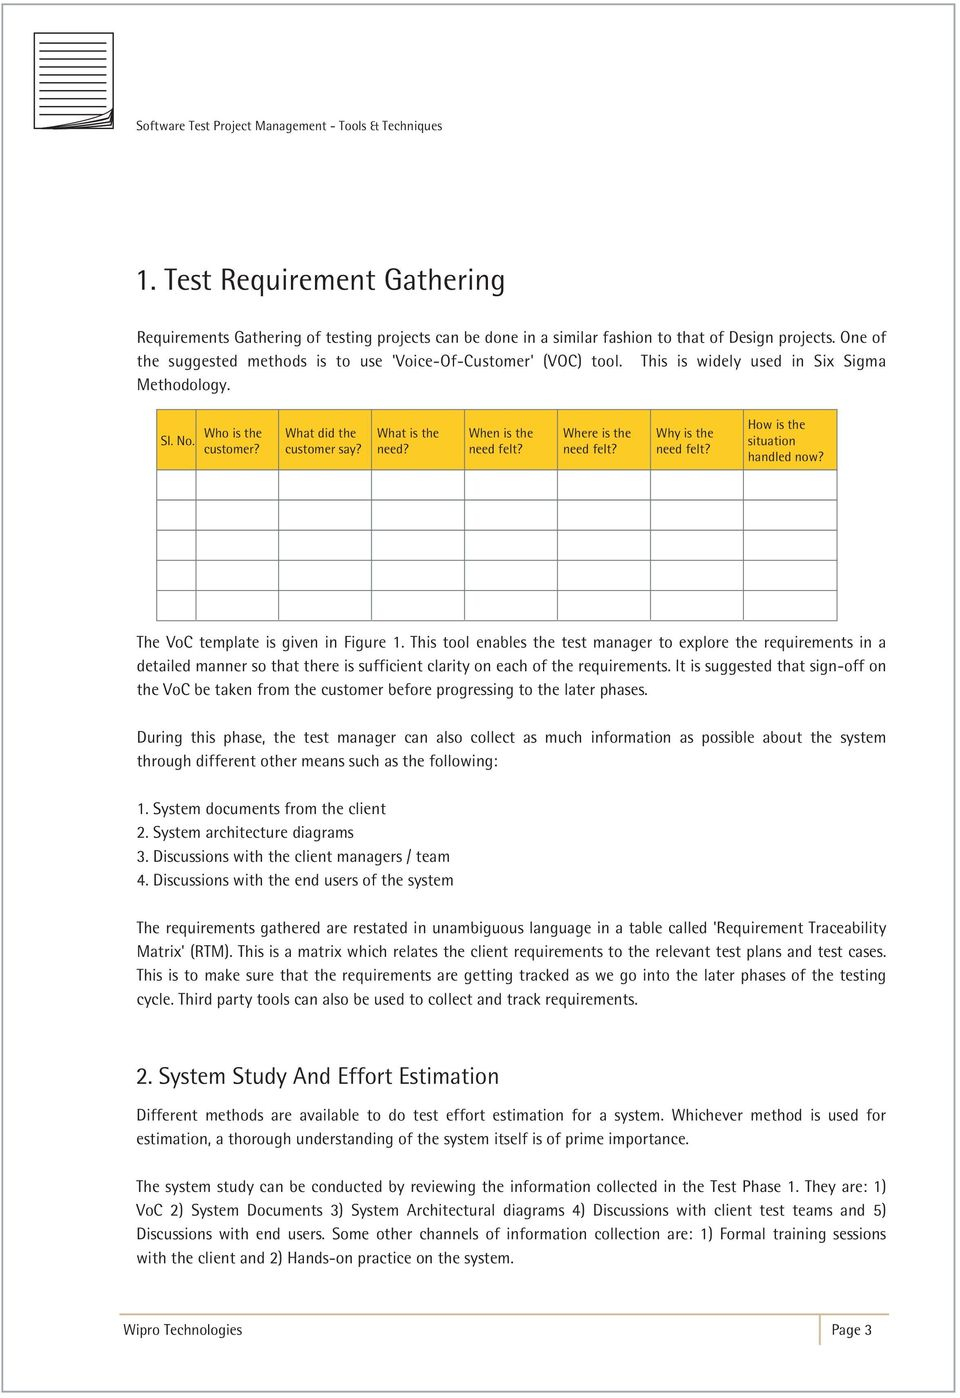 Software Test Project Management Tools Techniques PDF - Software requirements gathering tools